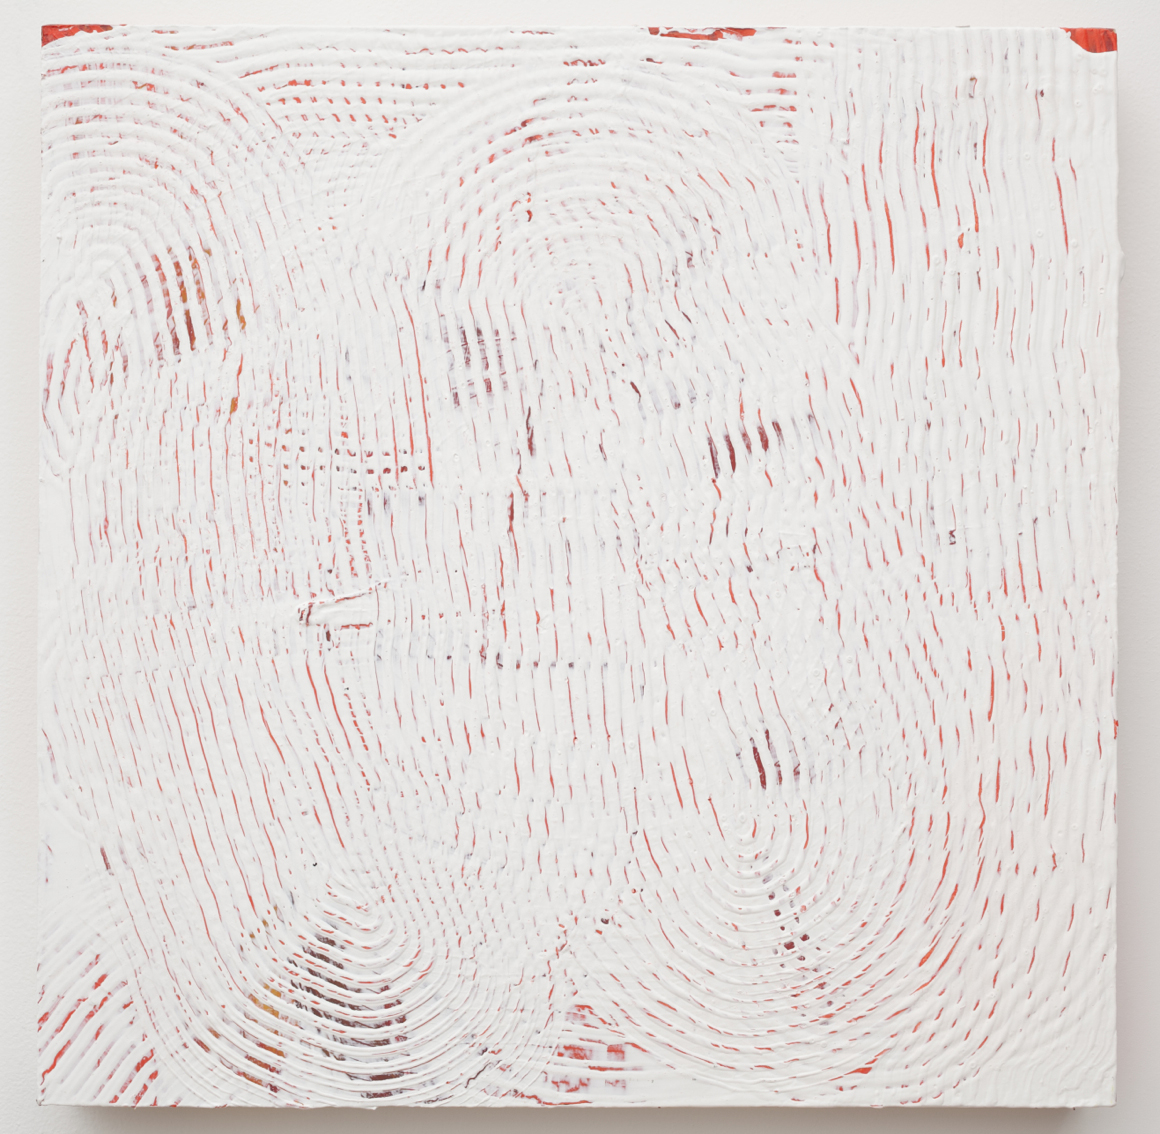 "<p><span class=""name"">Adam Bateman</span><br><em>White and Red</em><span class='media'>acrylic and spray paint on panel</span>15.5 x 15.5in<br>2014<br><a class='inquire' href='mailto:info@gildargallery.com?subject=Artwork Inquiry ABAT0012&body=I am interested in finding out more about White and Red by Adam Bateman'>Inquire</a></p>"